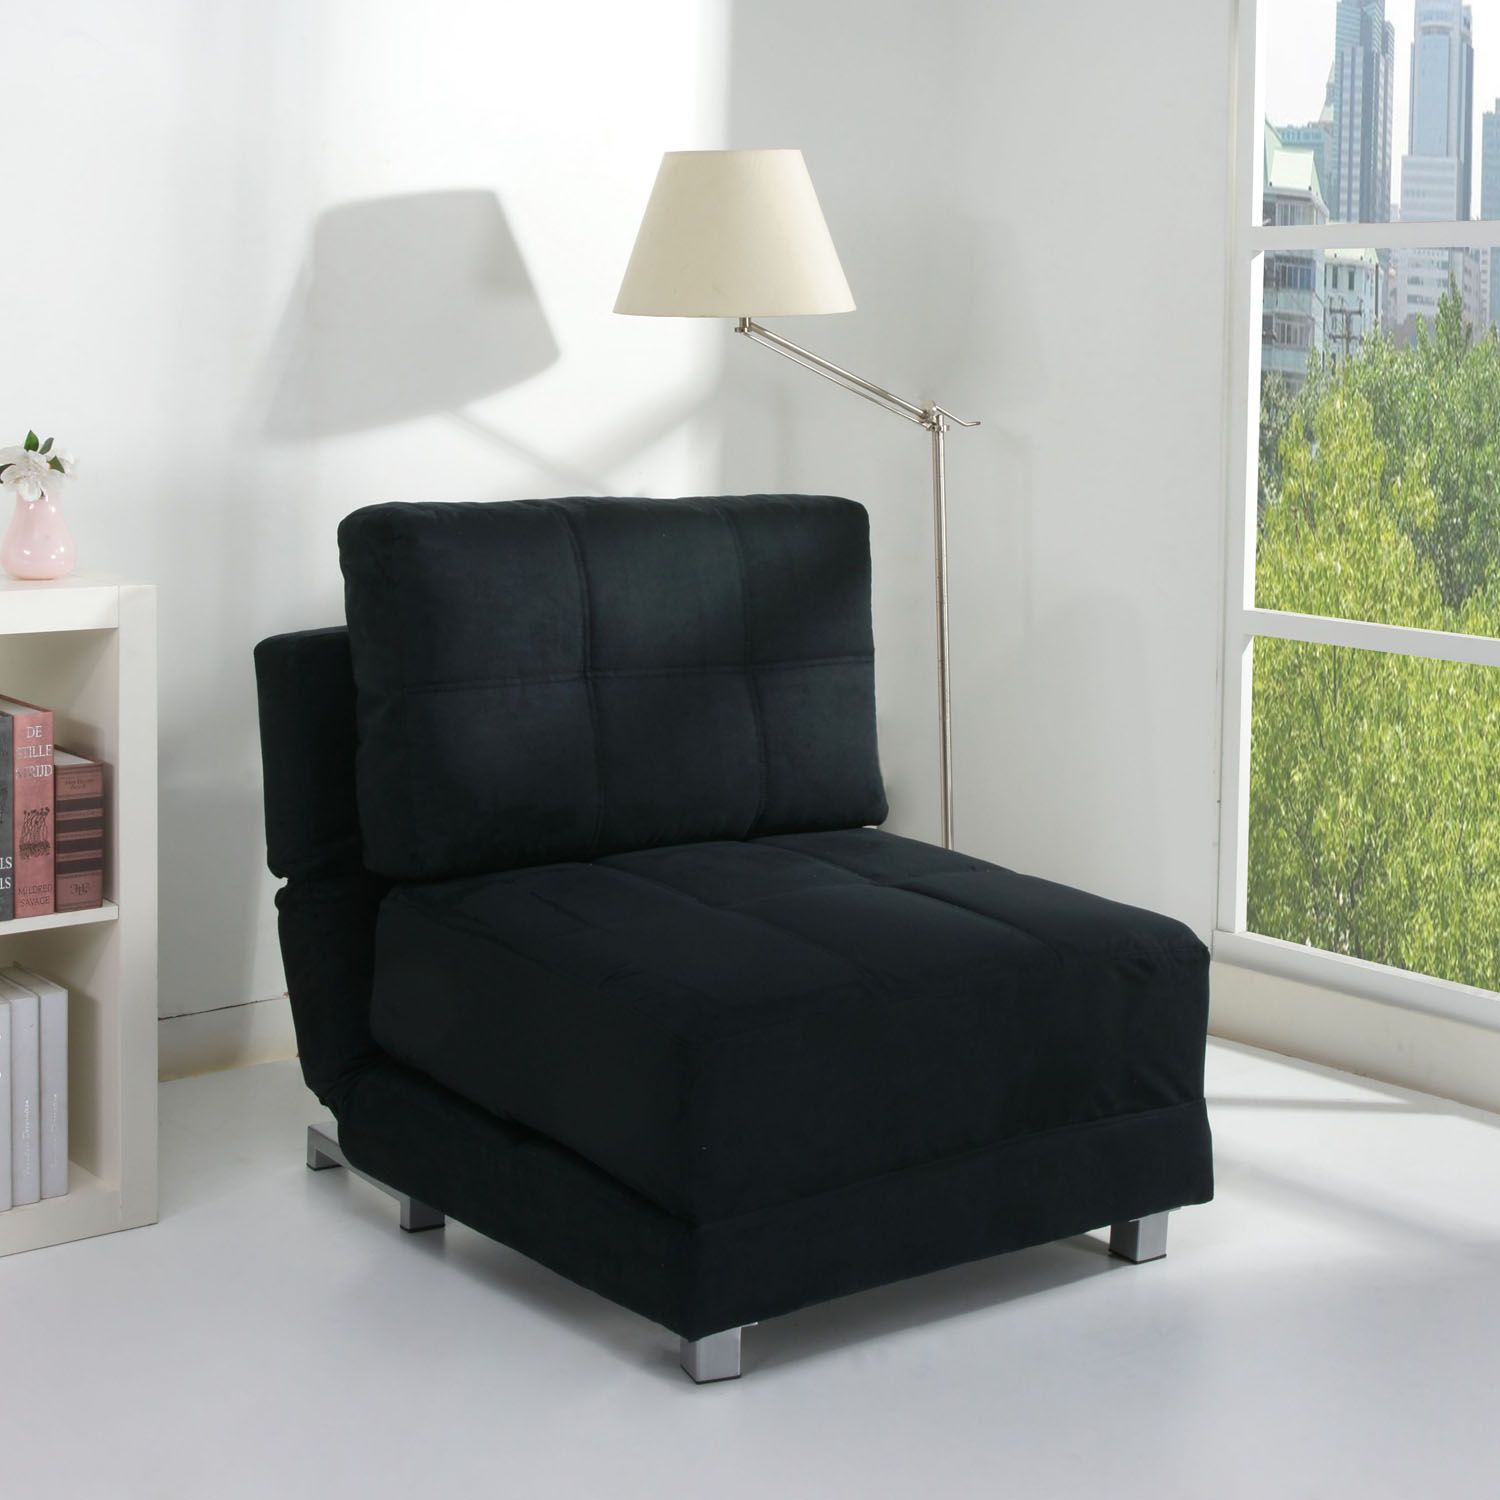 Black chair bed pull out sofa bed padded foam cushions faux